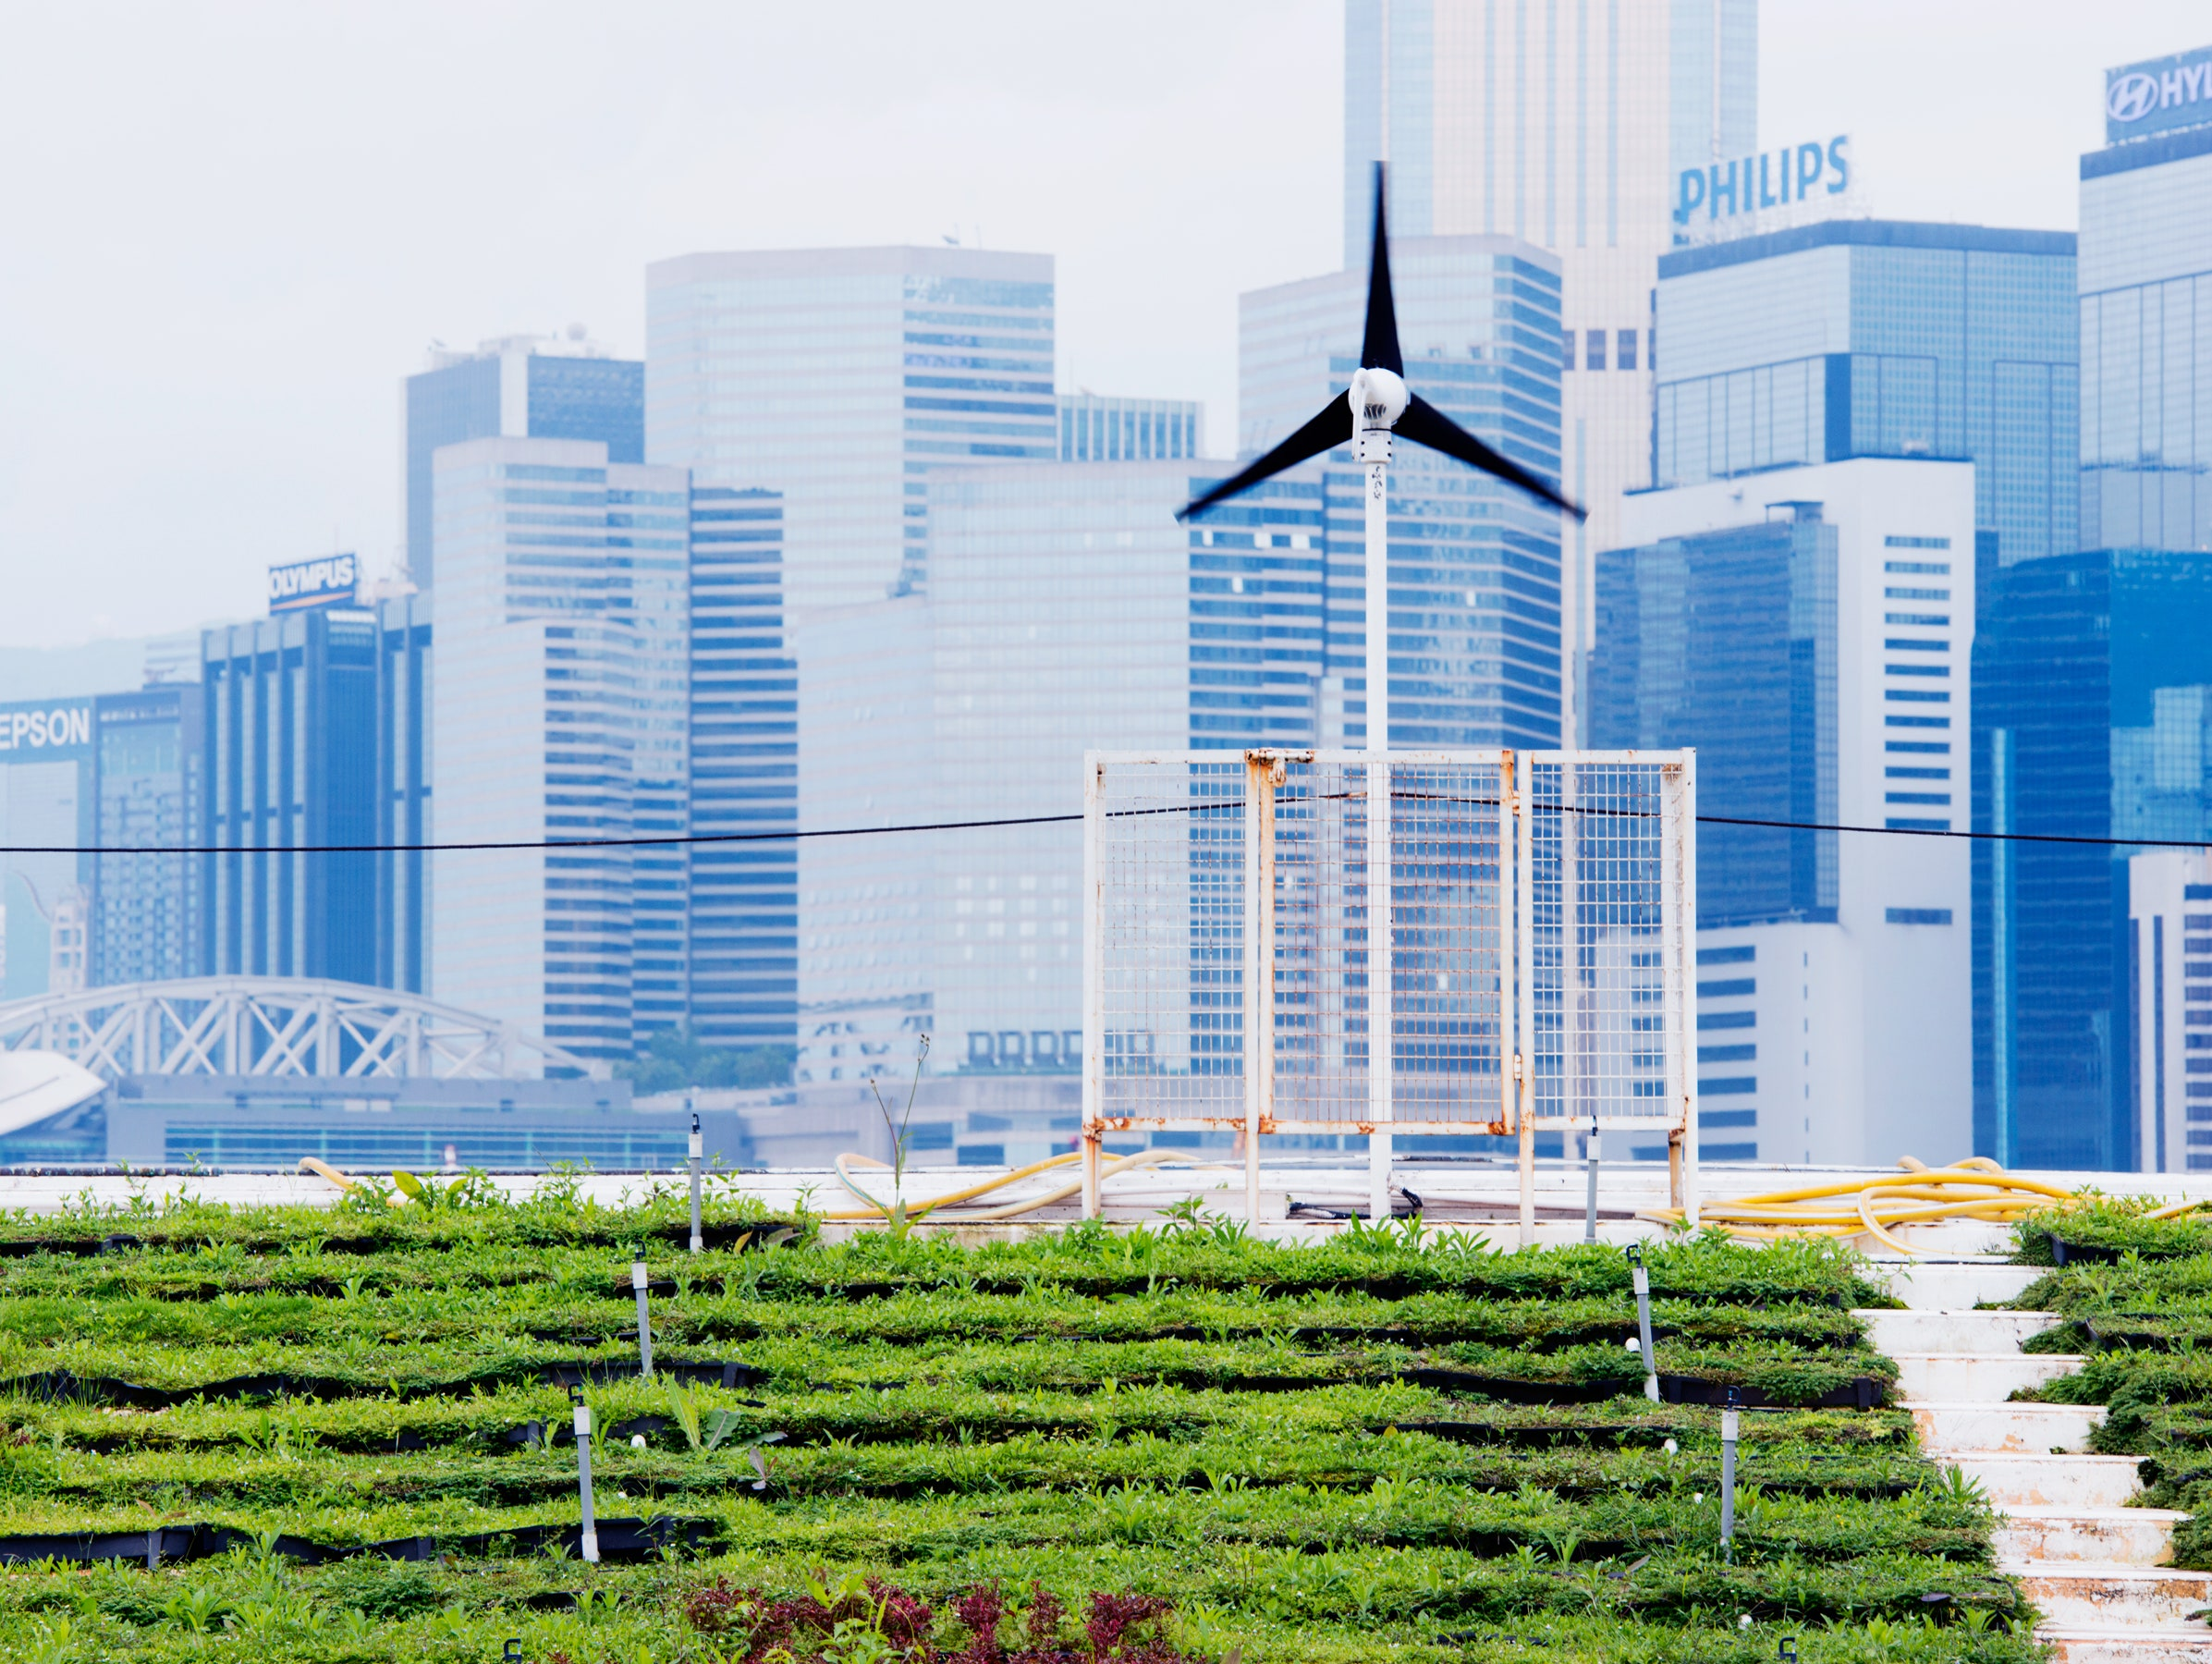 The Futuristic Farms That Will Feed the World